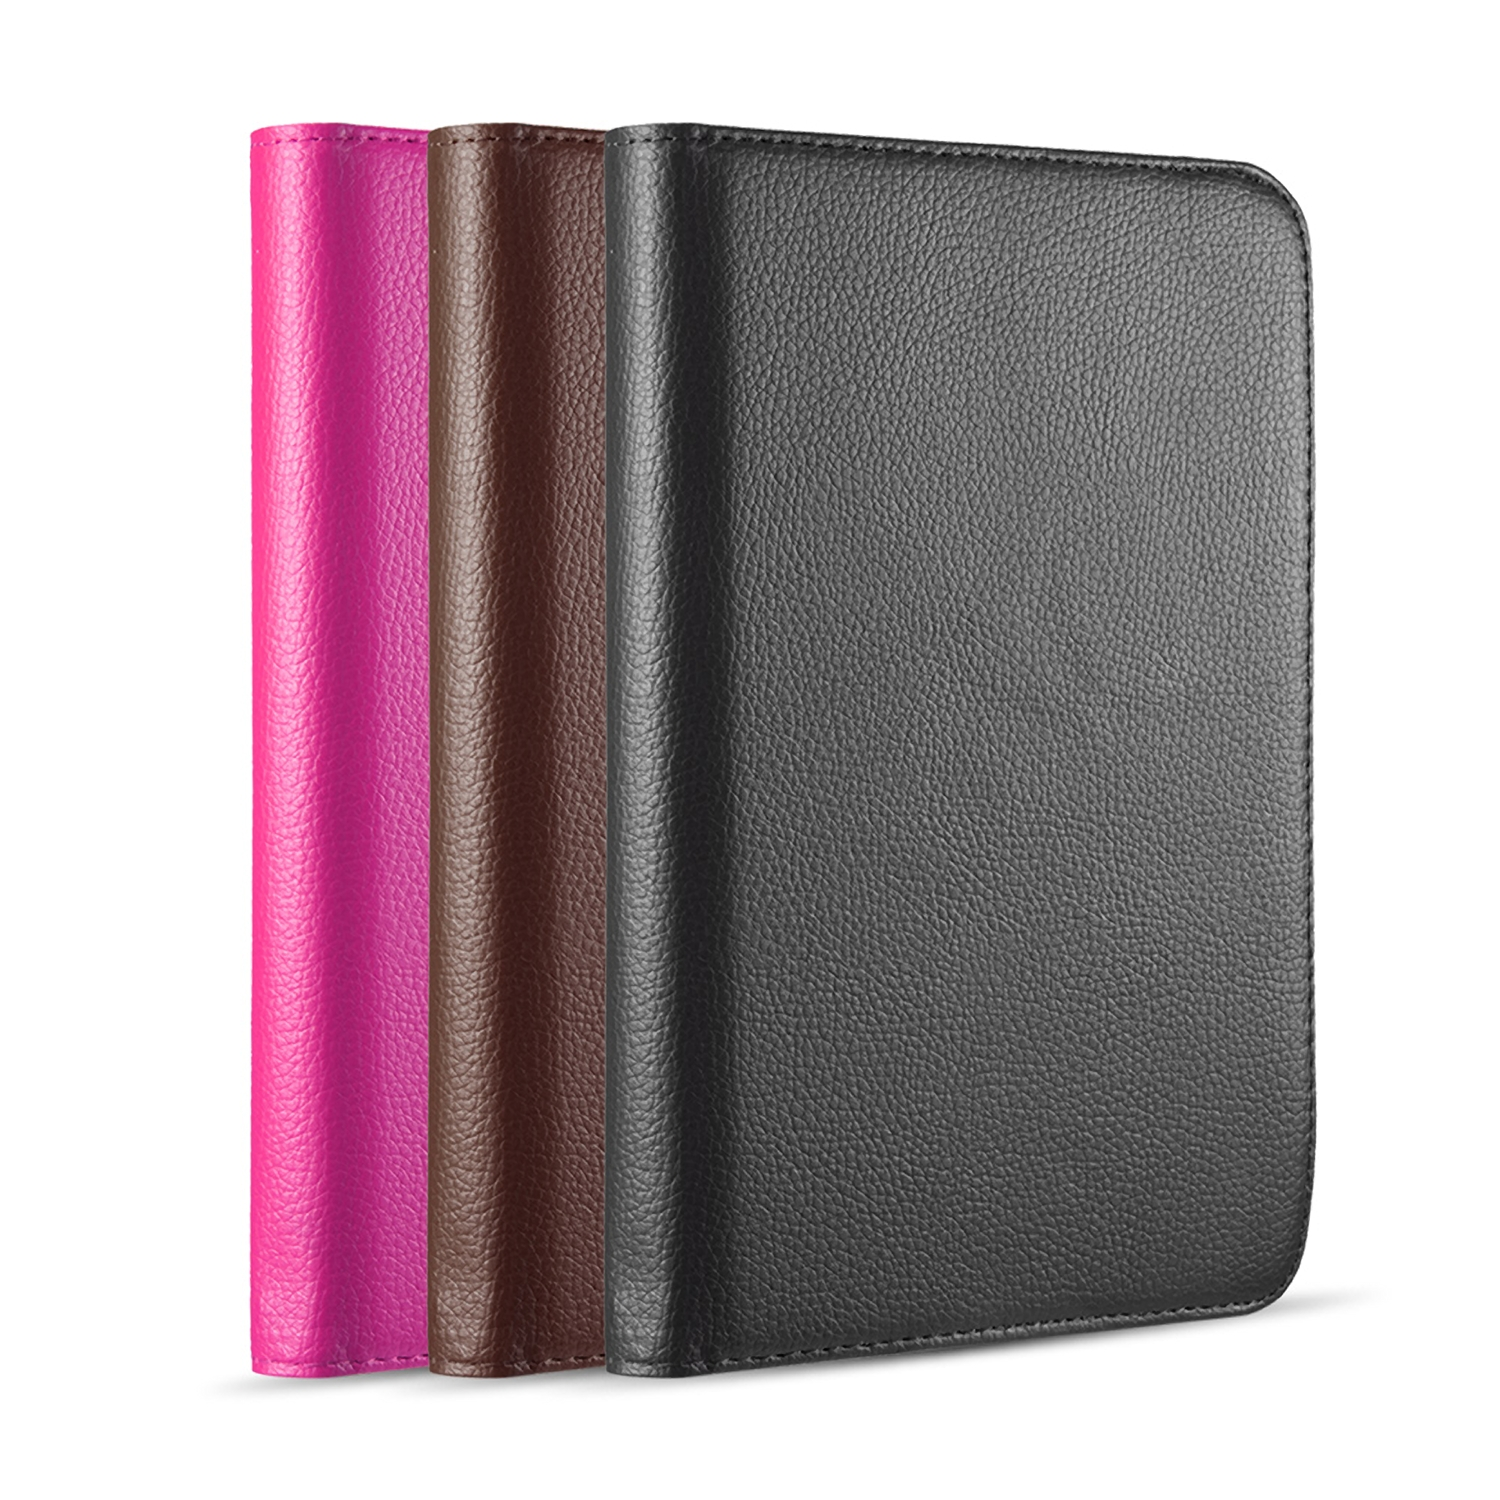 Ipad Pro 12.9 (2018) Rotation Stand Tablet Folio Cover